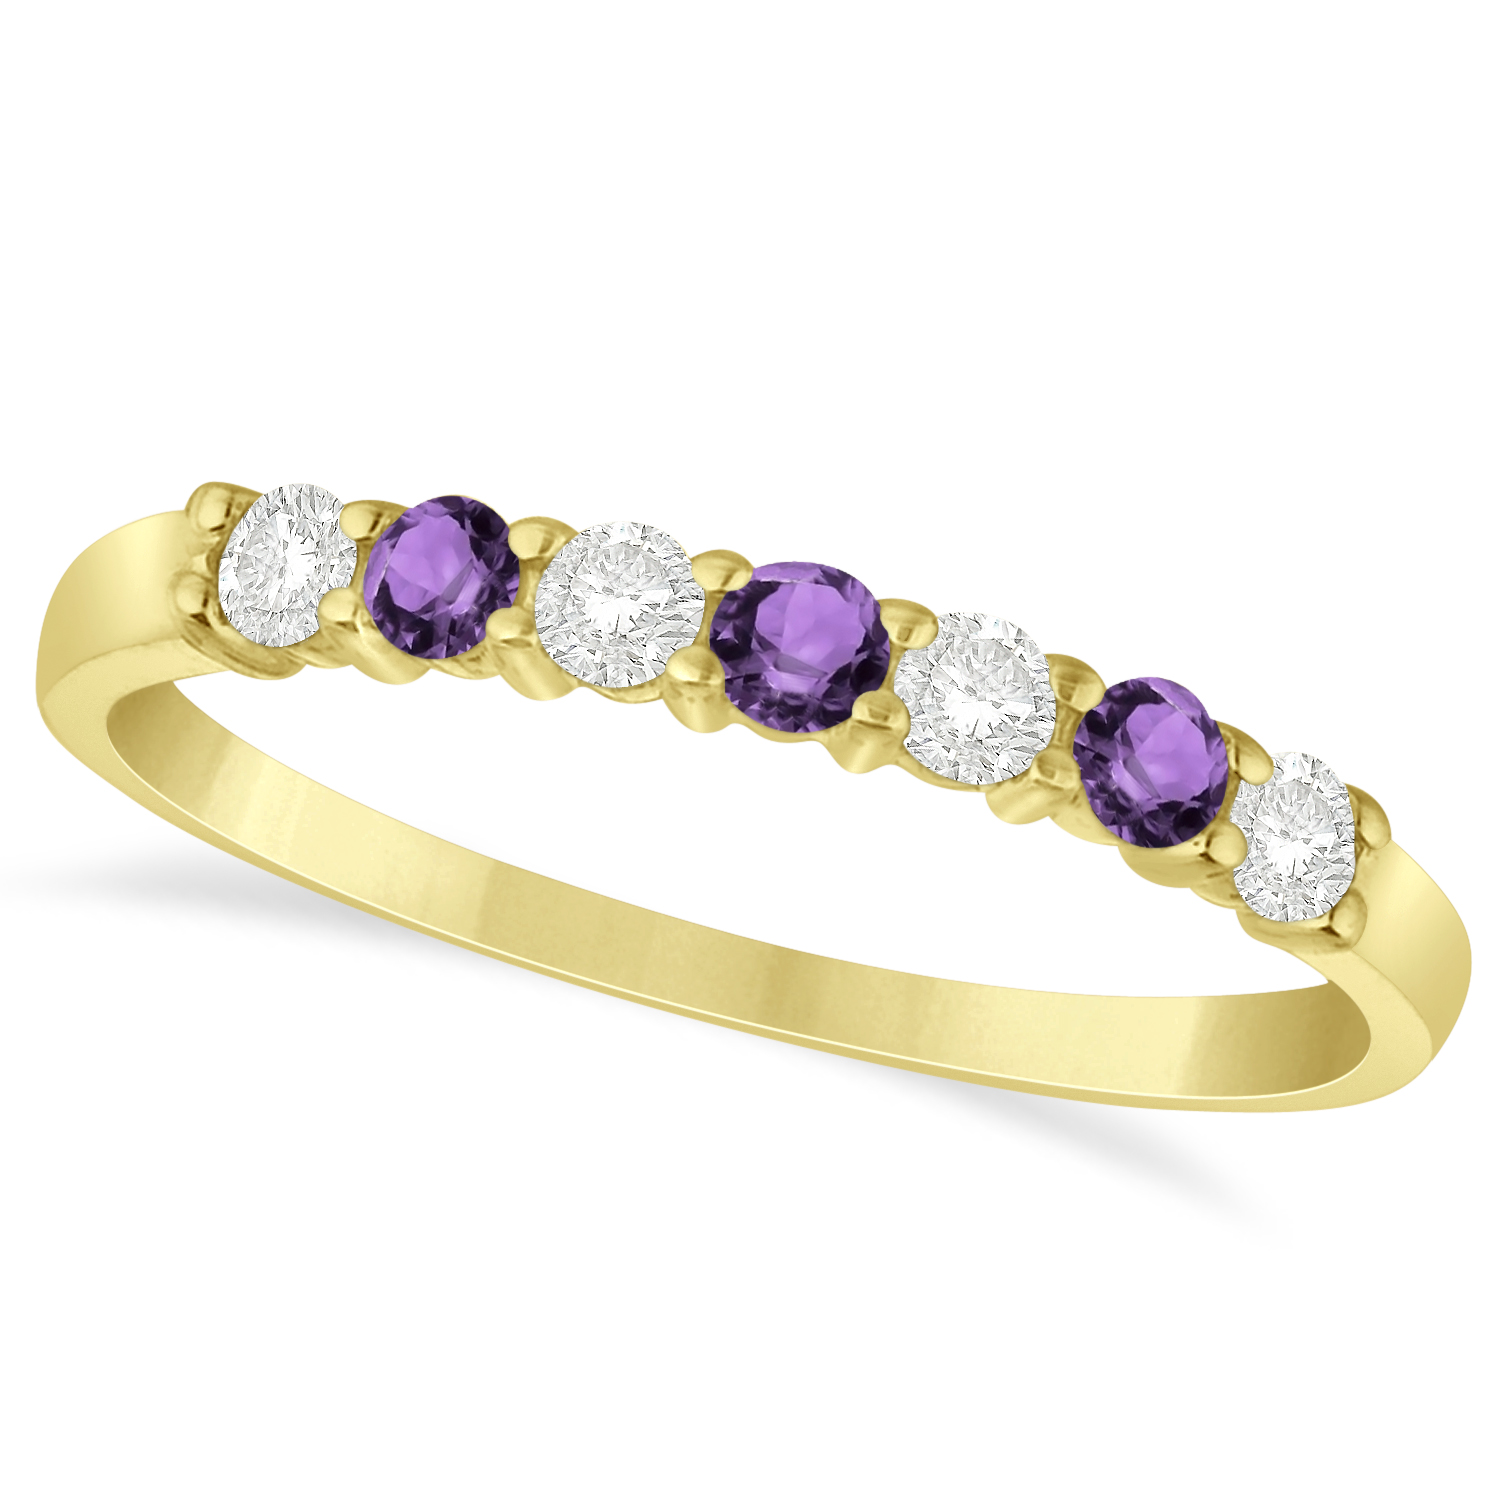 Diamond Amethyst 7 Stone Wedding Band 14k Yellow Gold 034ct